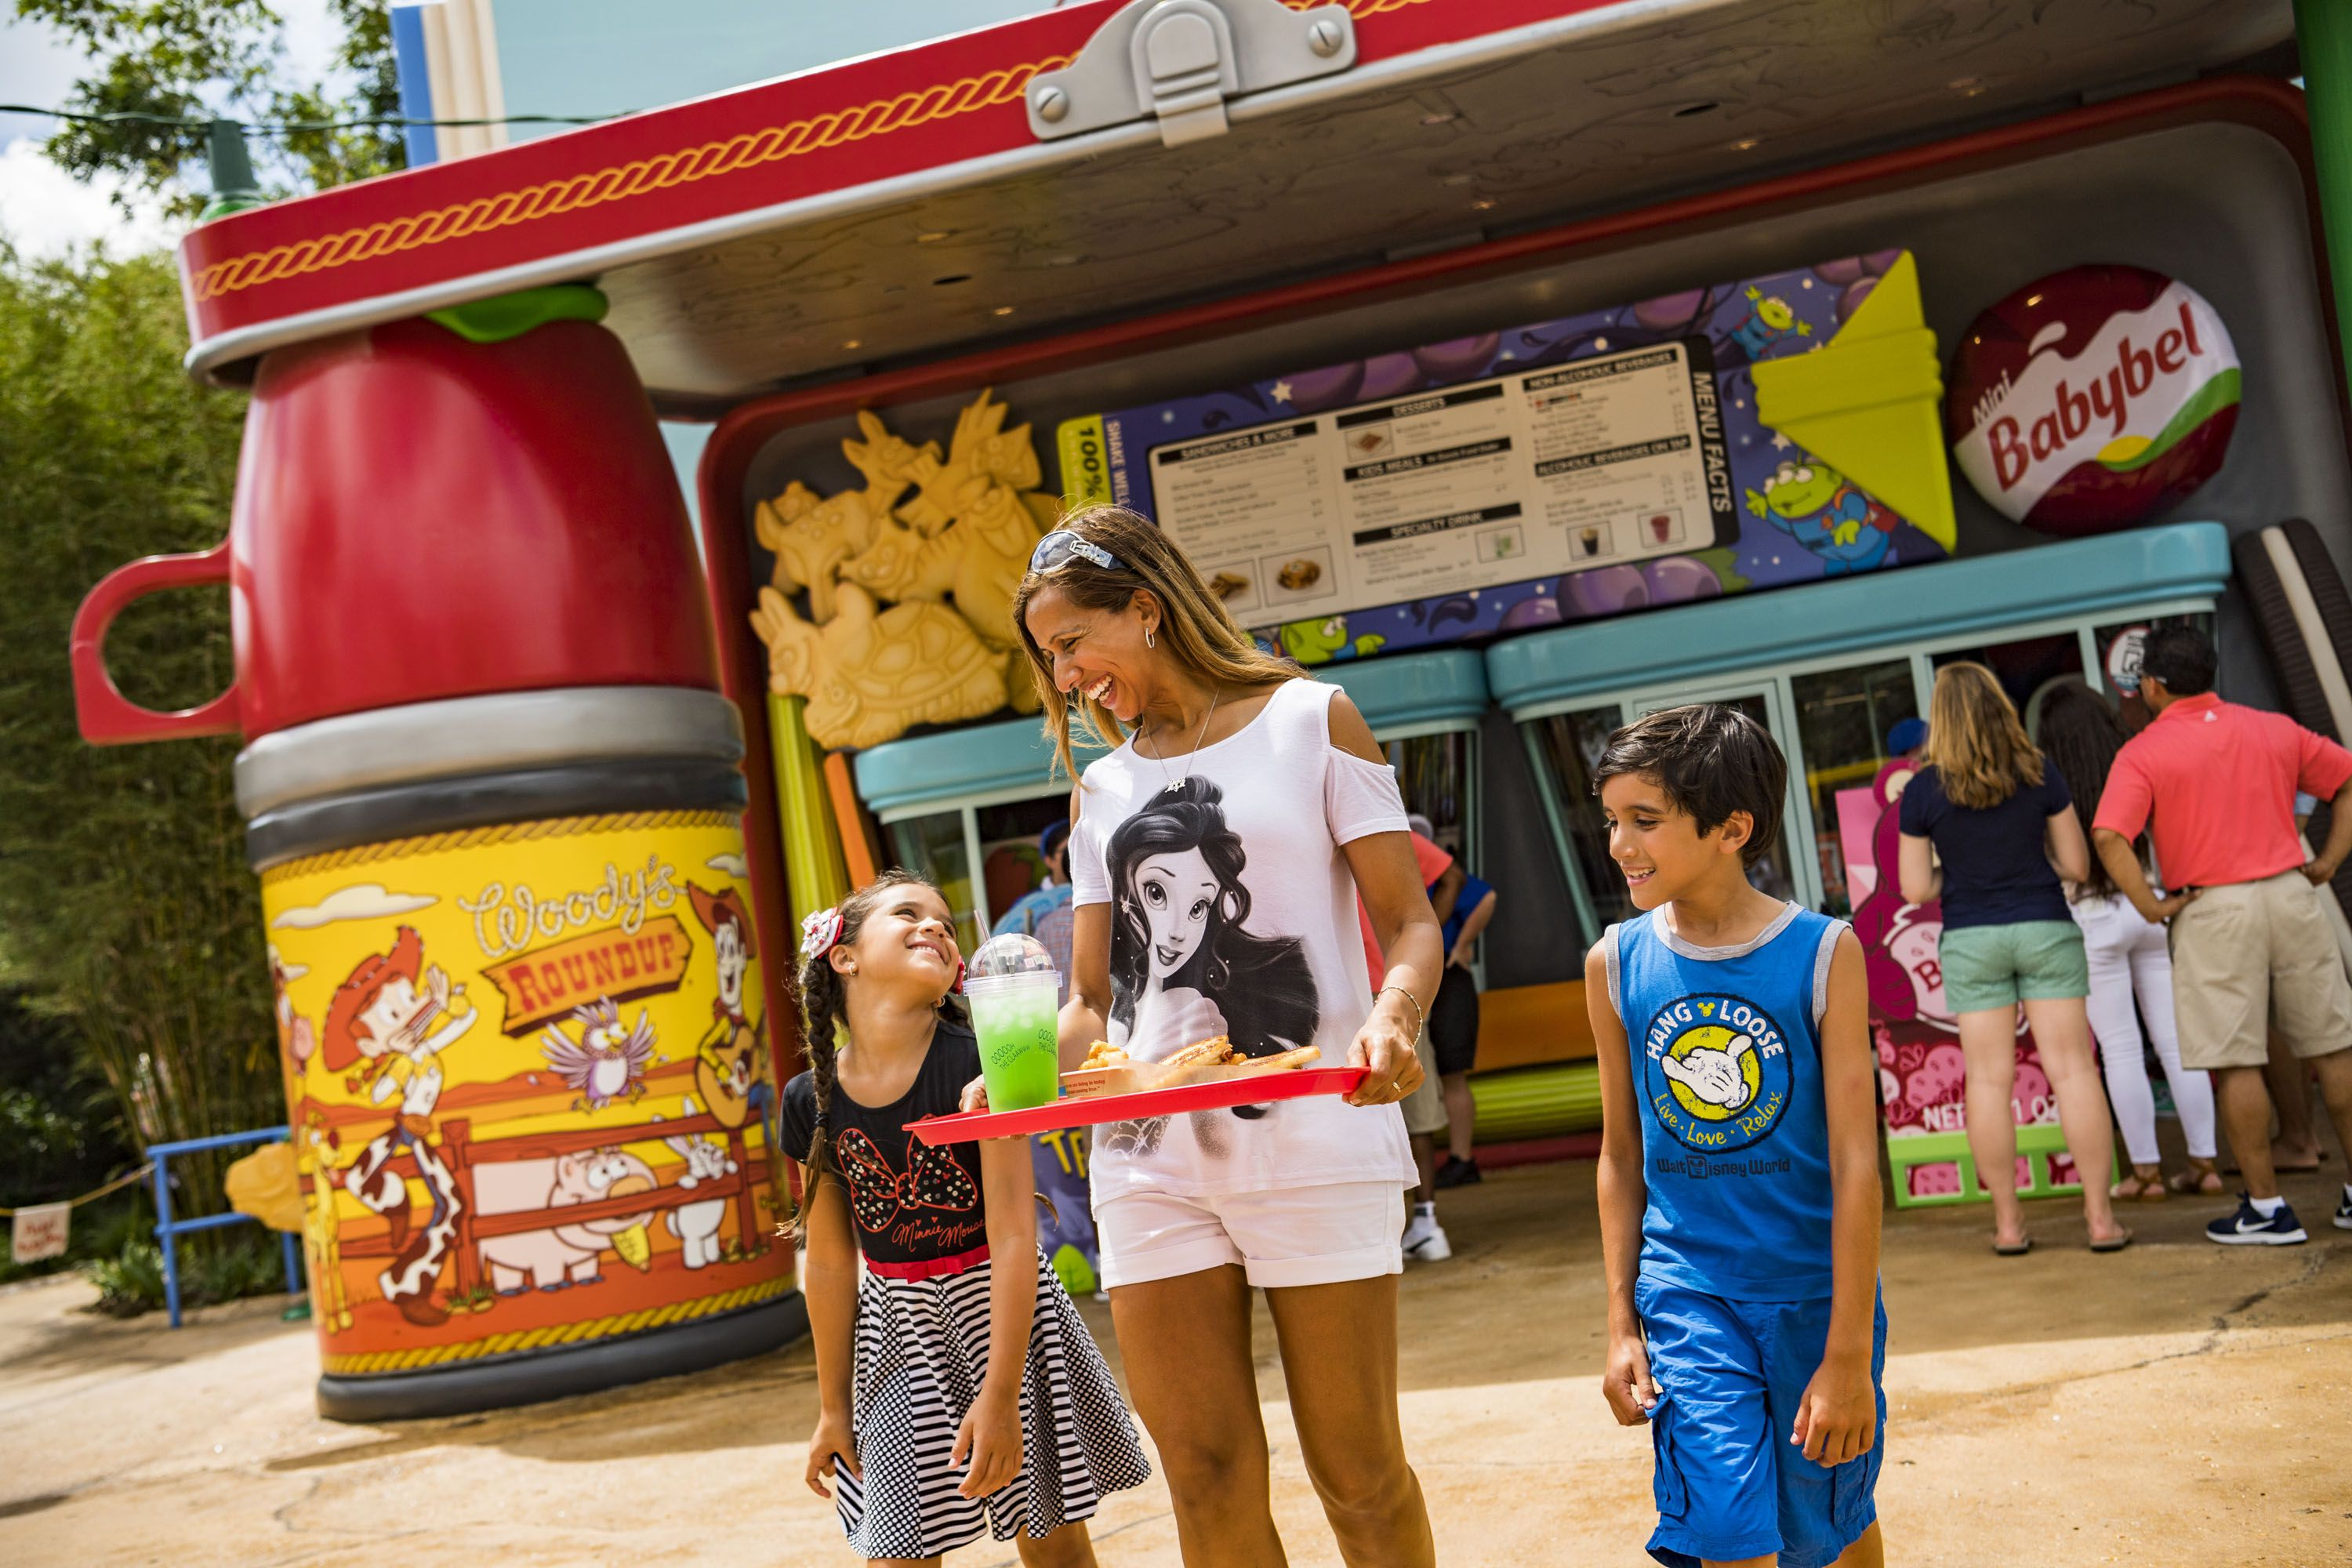 Woody's Lunch Box in Toy Story Land